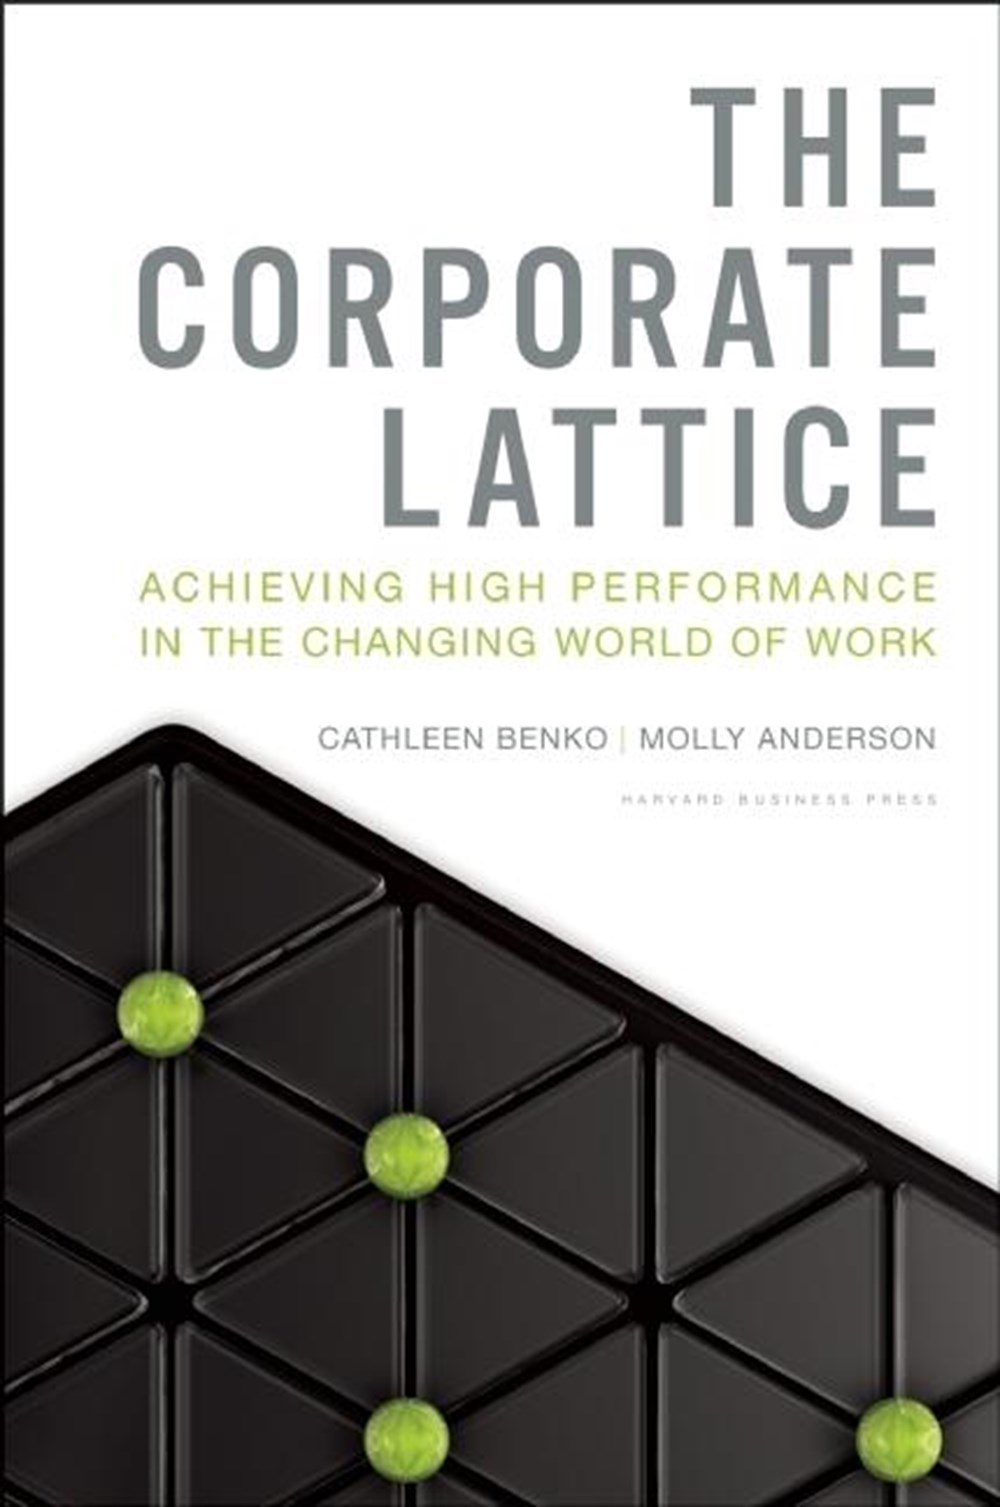 Corporate Lattice Achieving High Performance in the Changing World of Work